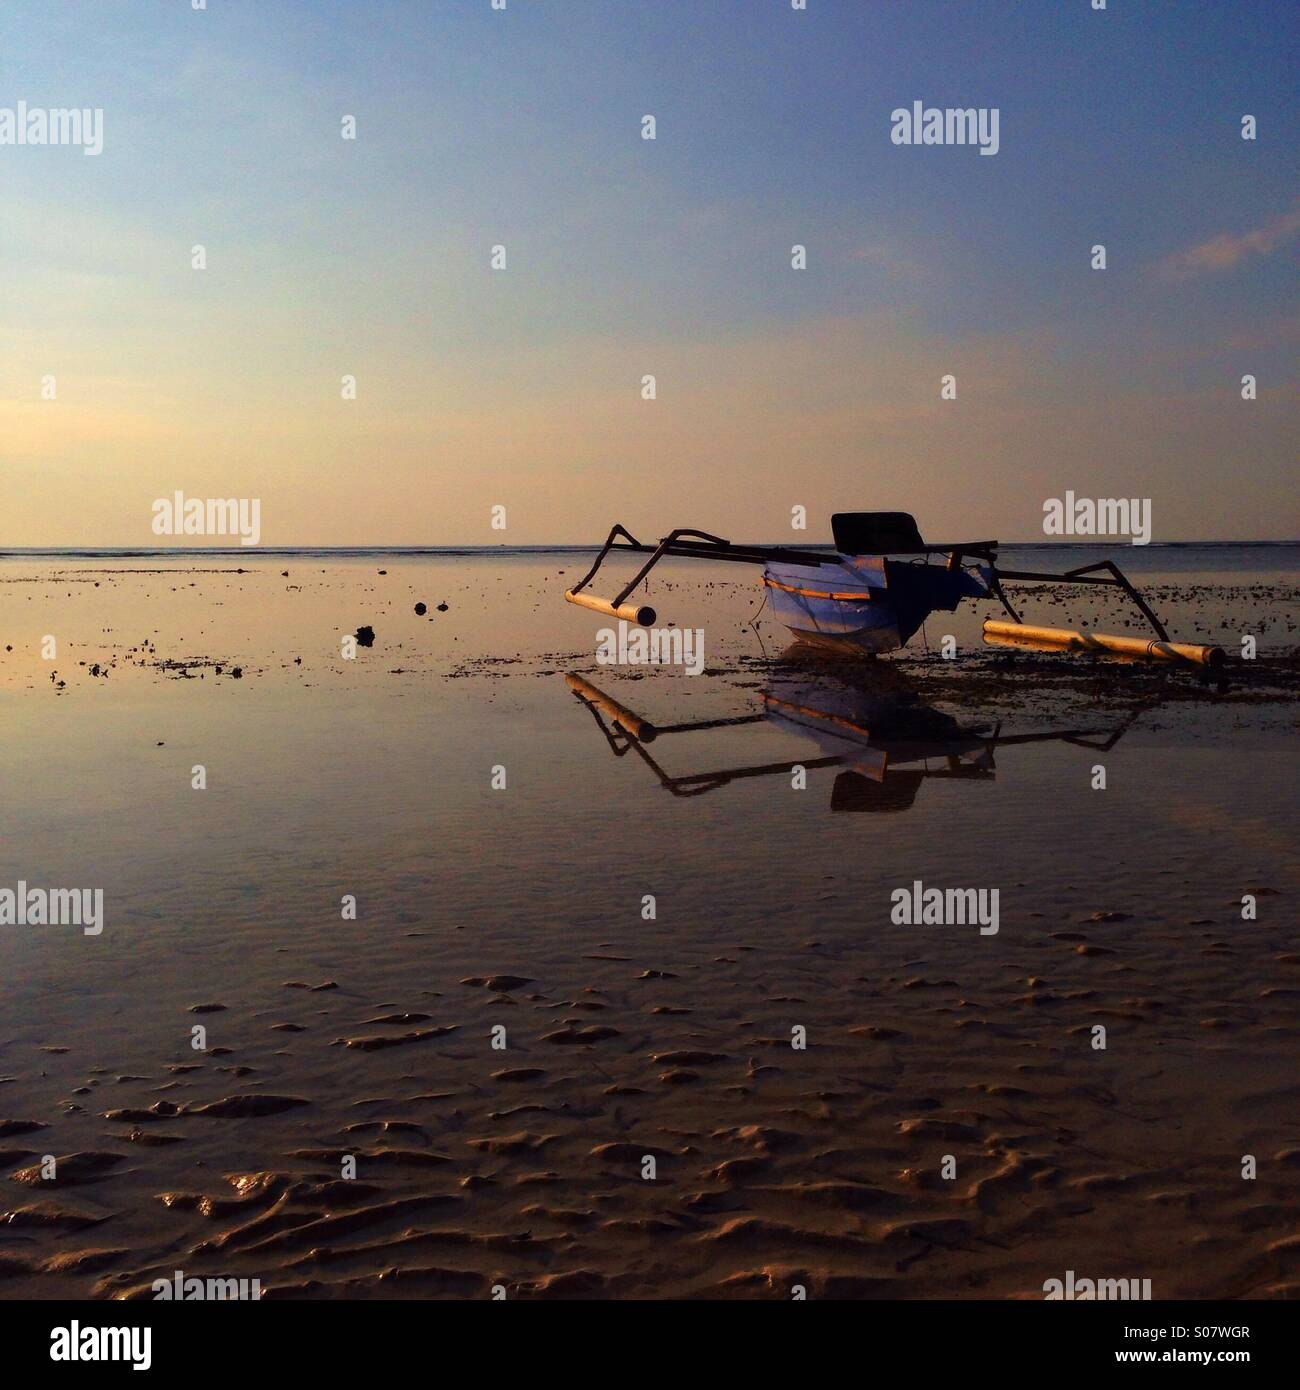 Boat on the beach - Stock Image